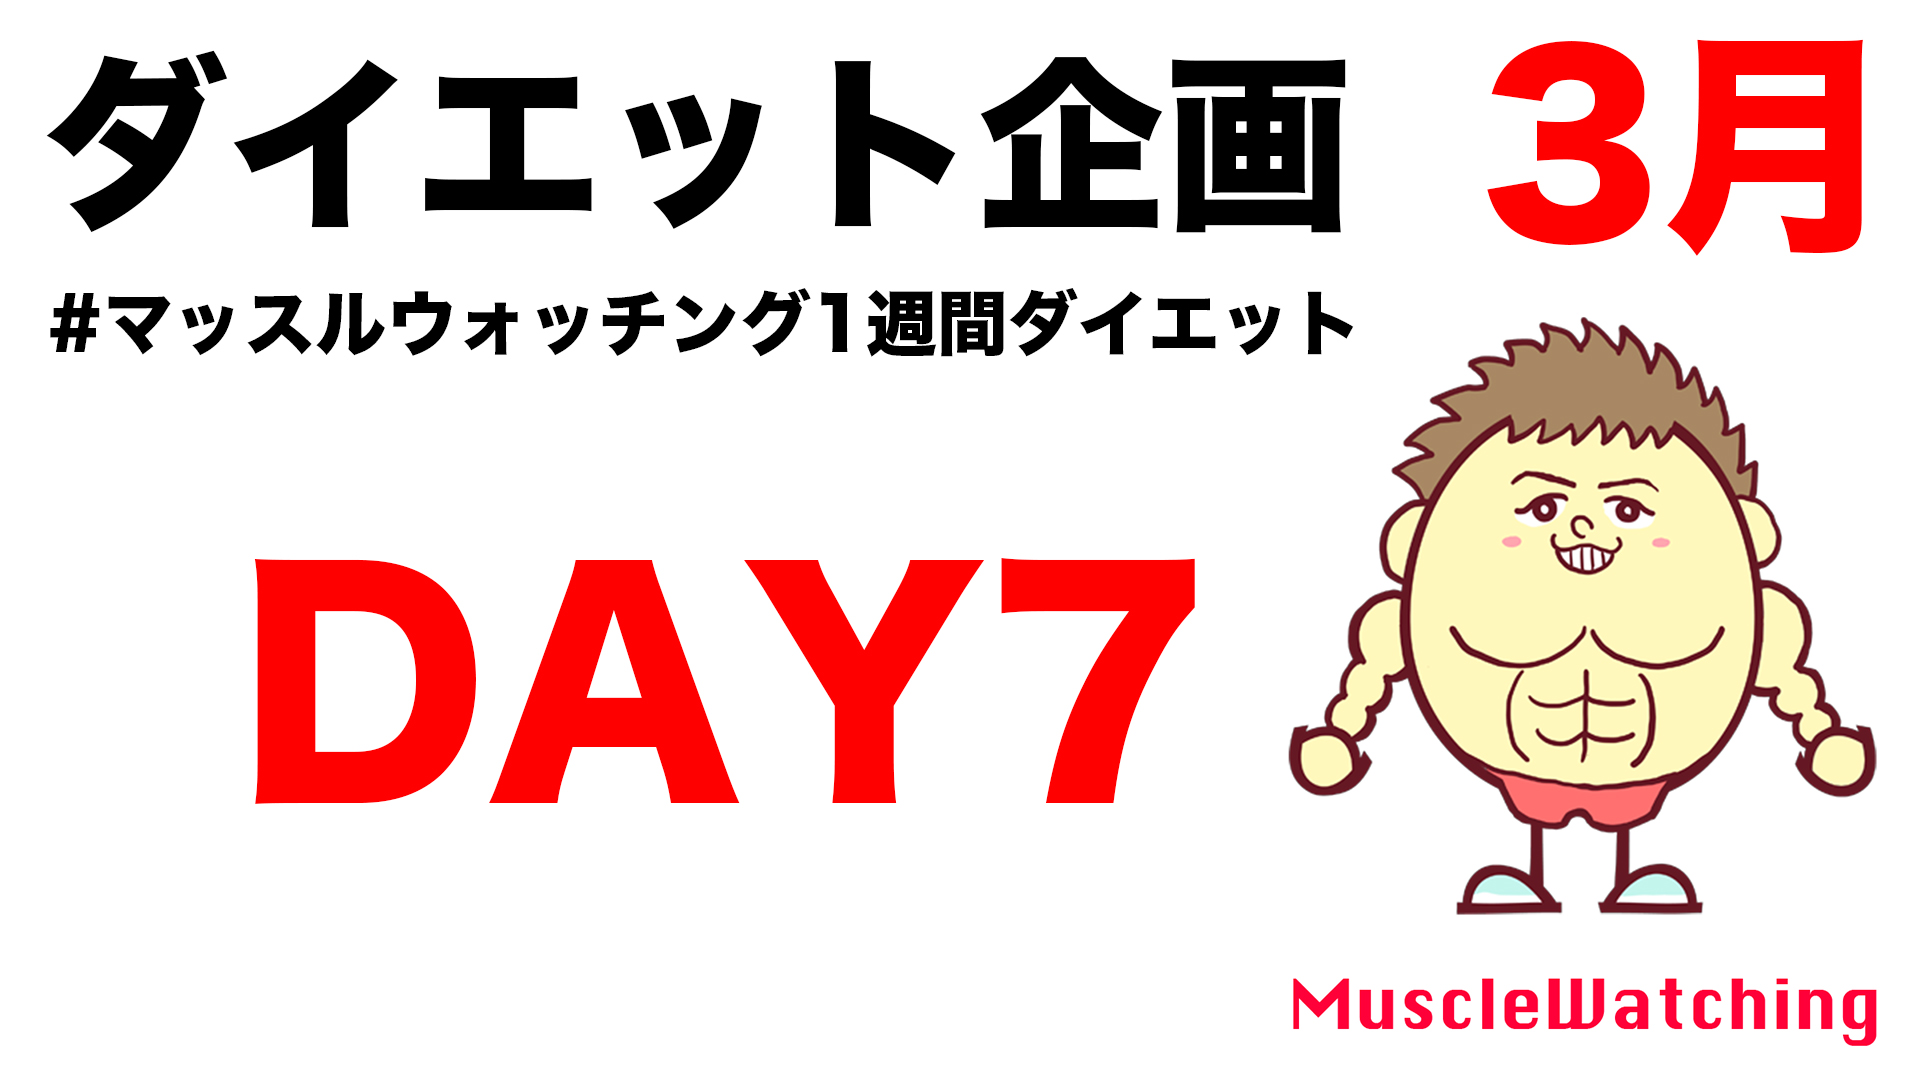 【DAY7】女性限定1週間ダイエット企画 3月| Muscle Watching